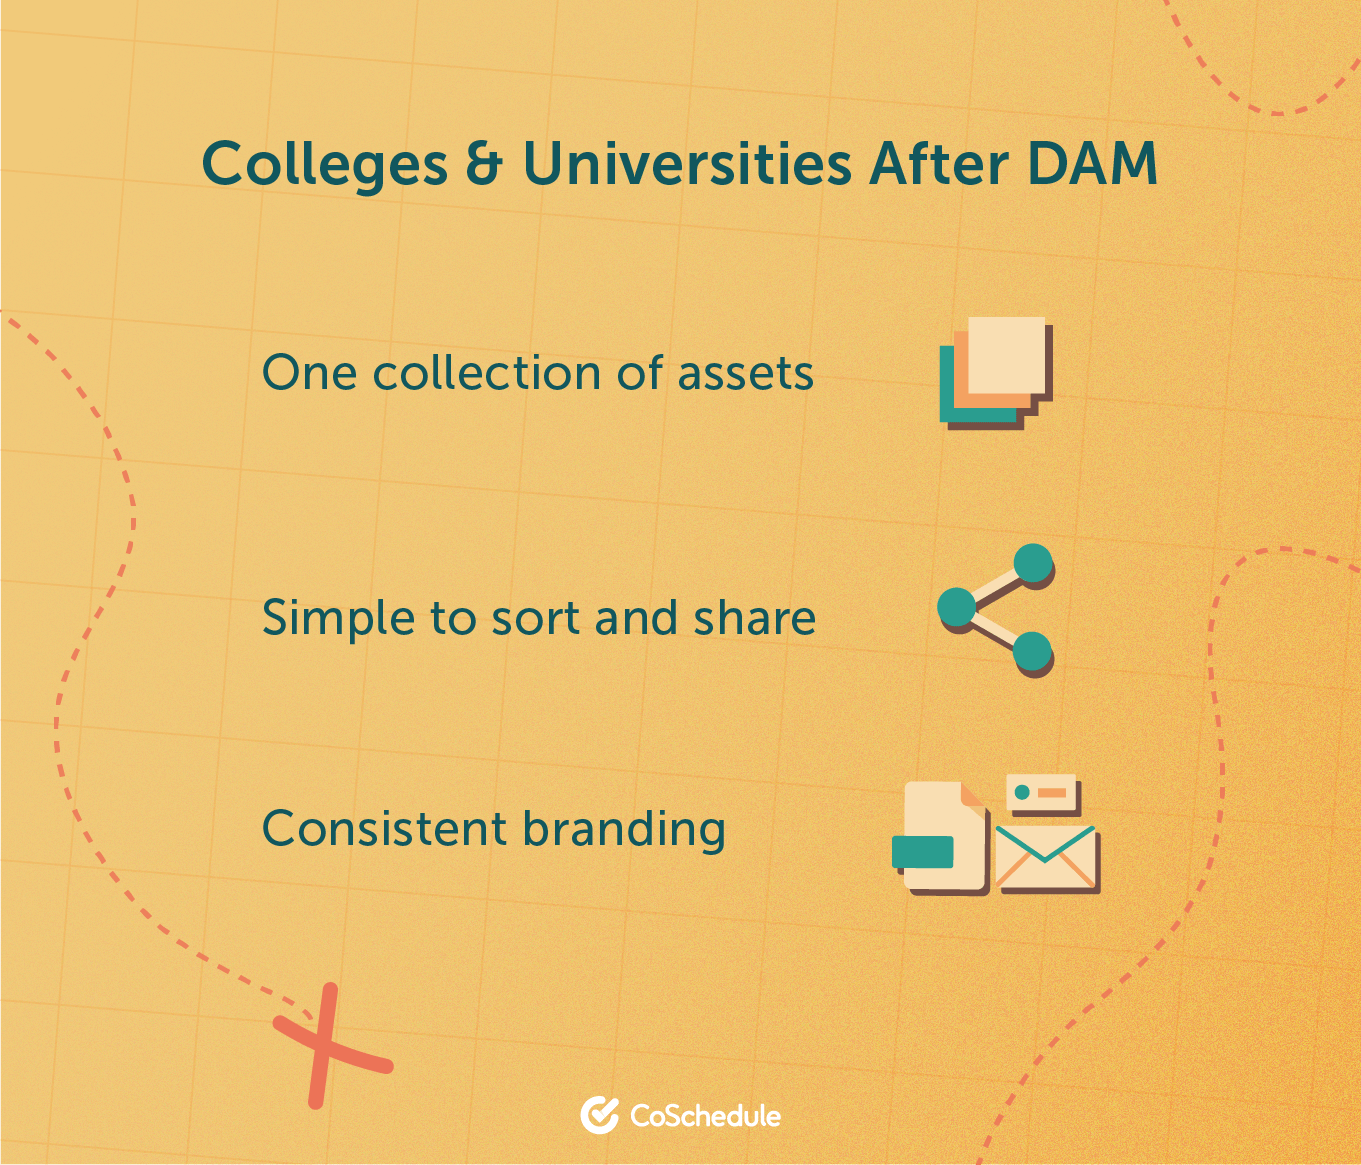 Colleges and universities after DAM